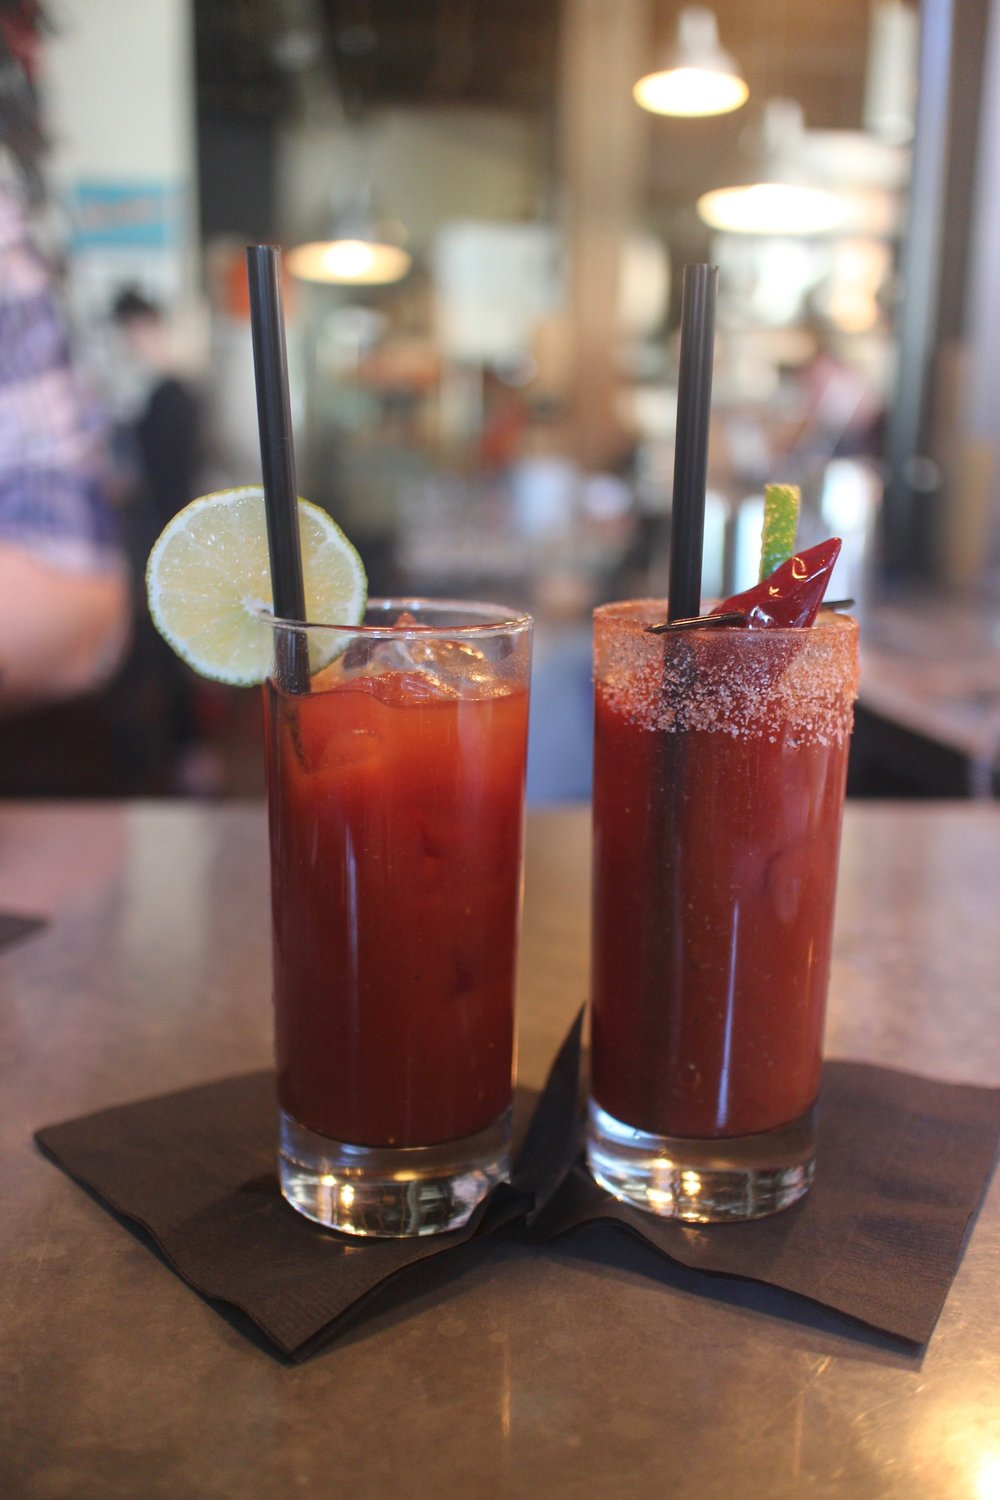 If you haven't downed a Mary's or two.. have you really been to brunch?